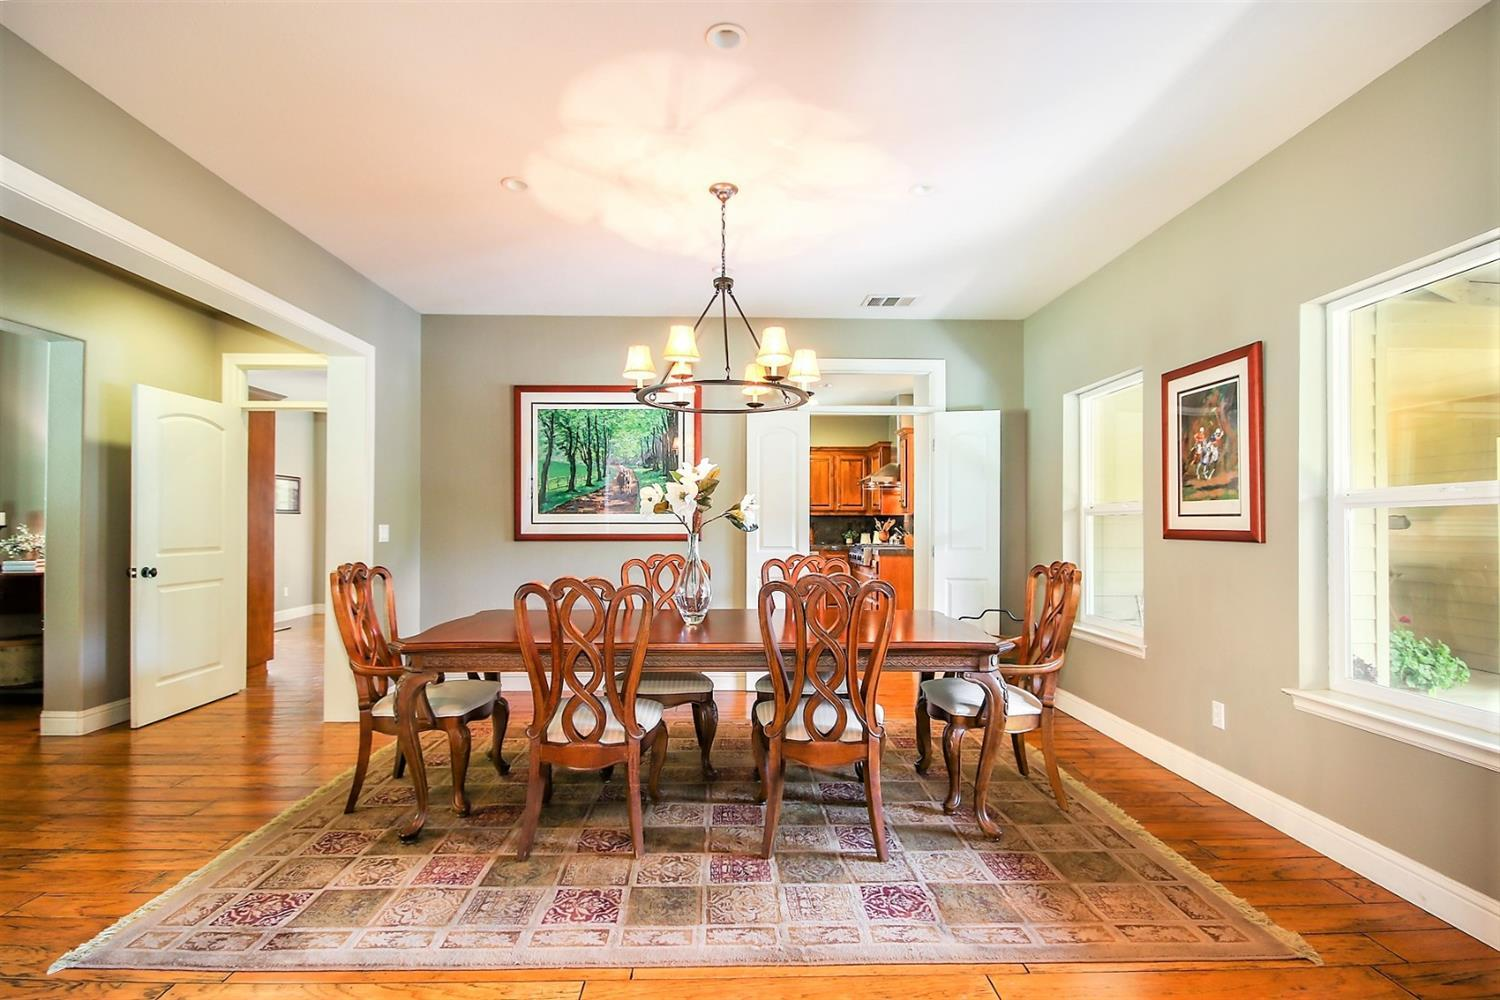 Round Table Loomis.6652 Laird Rd Loomis Ca Mls 19033632 New Vision Realty Group